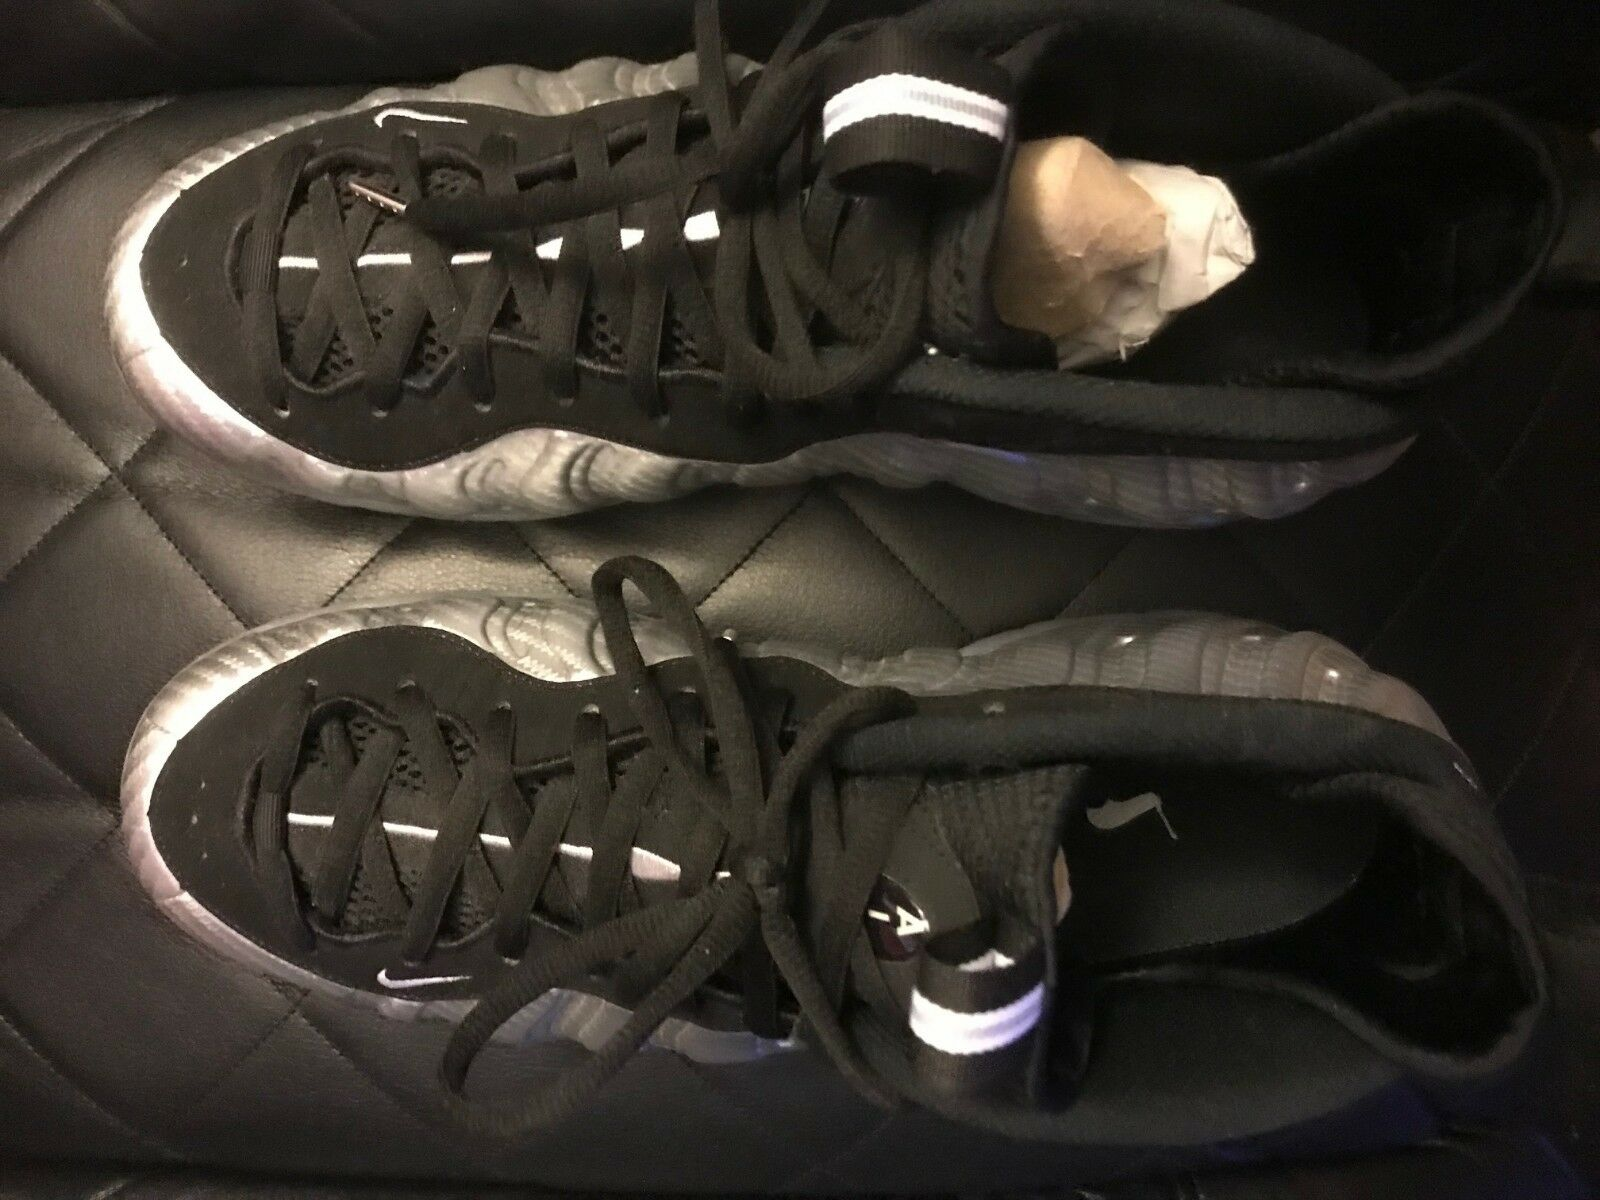 nike foamposite siver/black size 13 worn once New shoes for men and women, limited time discount